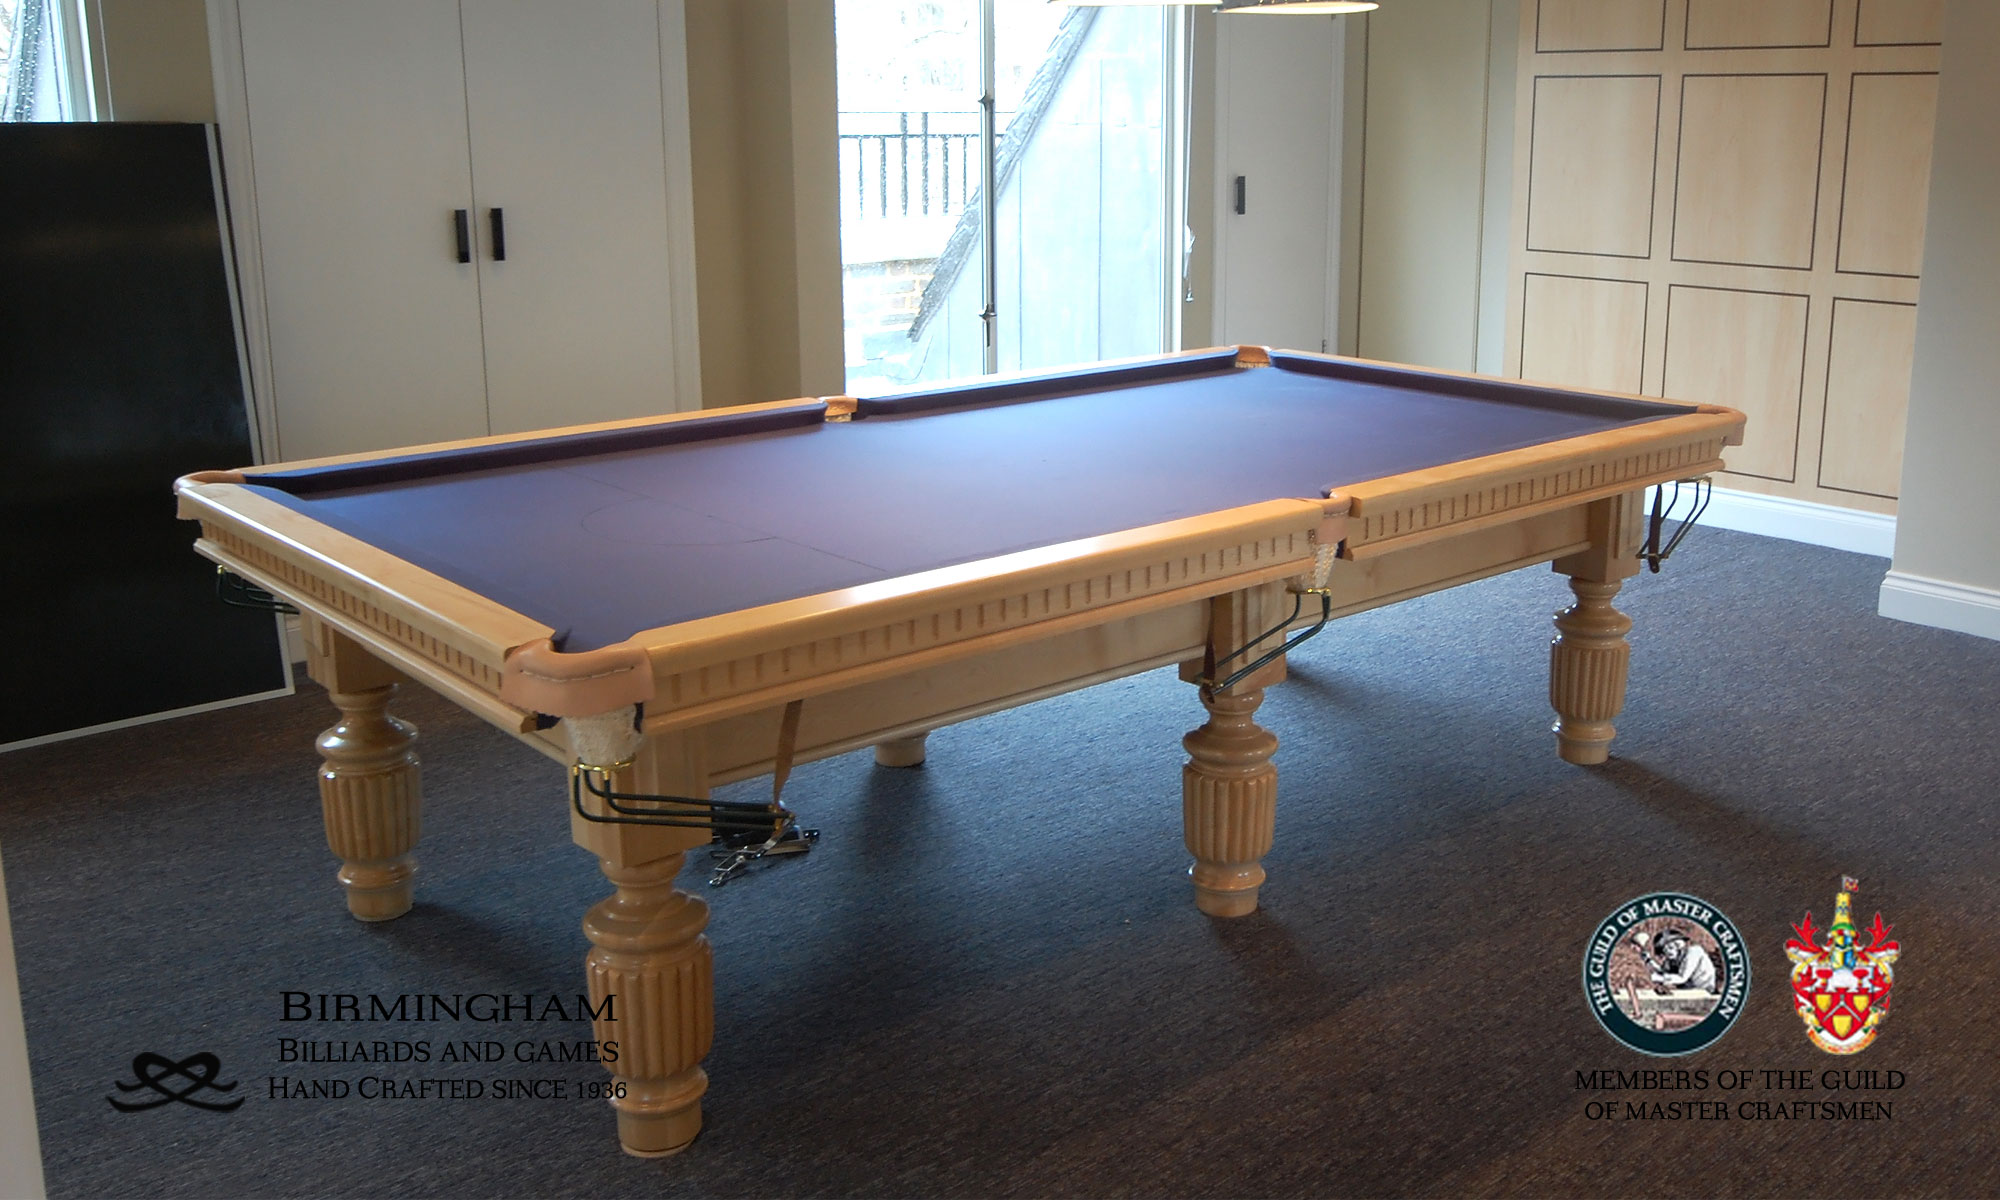 Timeless classic pool table, strachan style, light oak finish